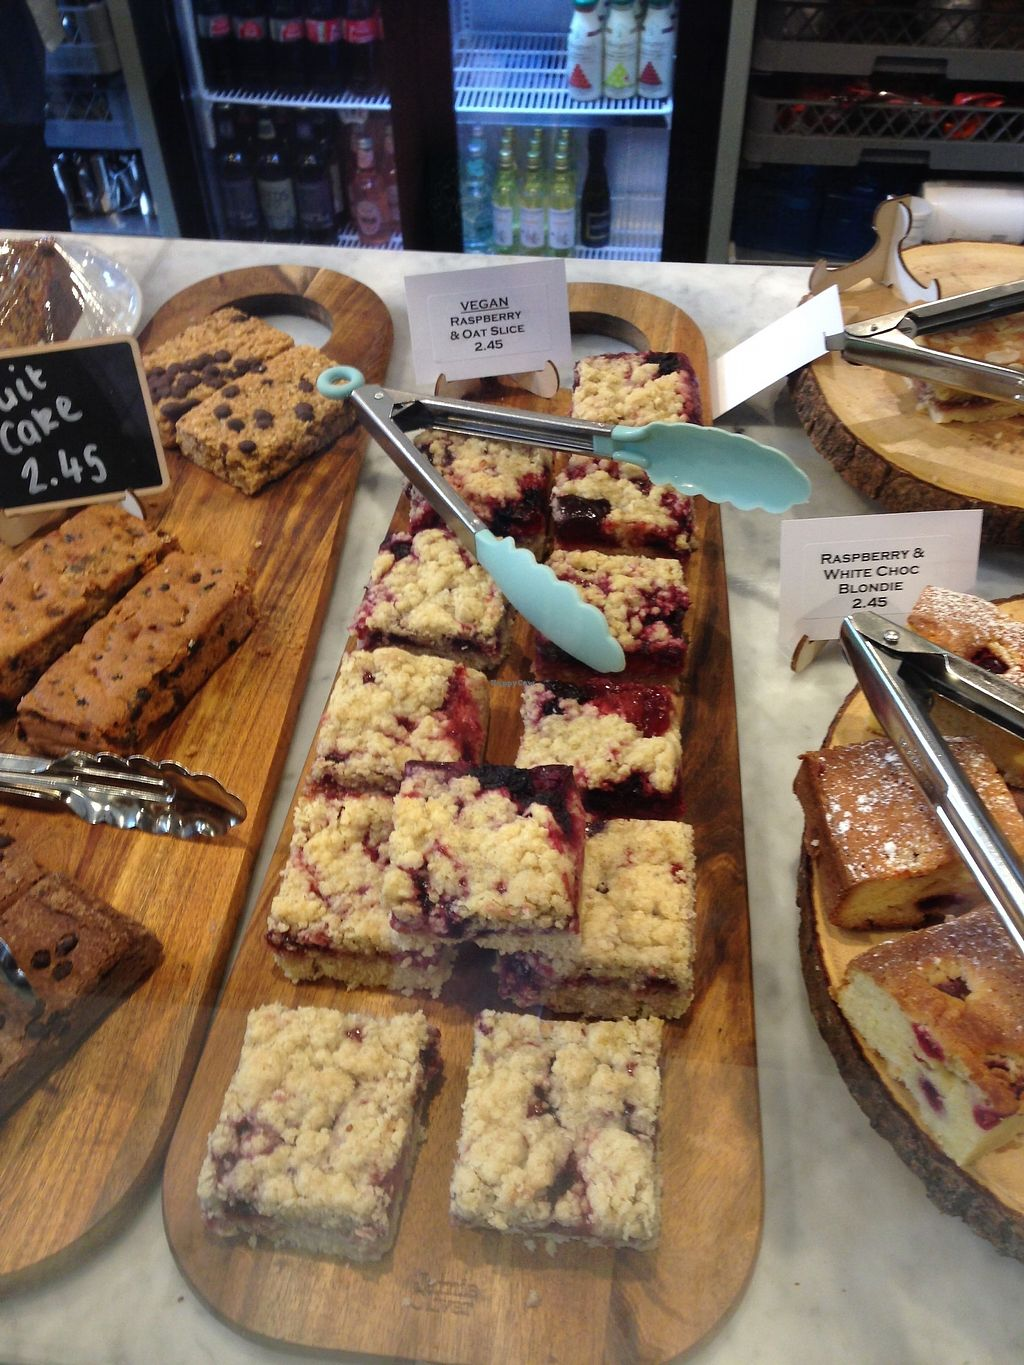 "Photo of Temple Newsam Tea Room  by <a href=""/members/profile/nathanjm"">nathanjm</a> <br/>Vegan raspberry and oat slice <br/> August 18, 2017  - <a href='/contact/abuse/image/98952/294101'>Report</a>"